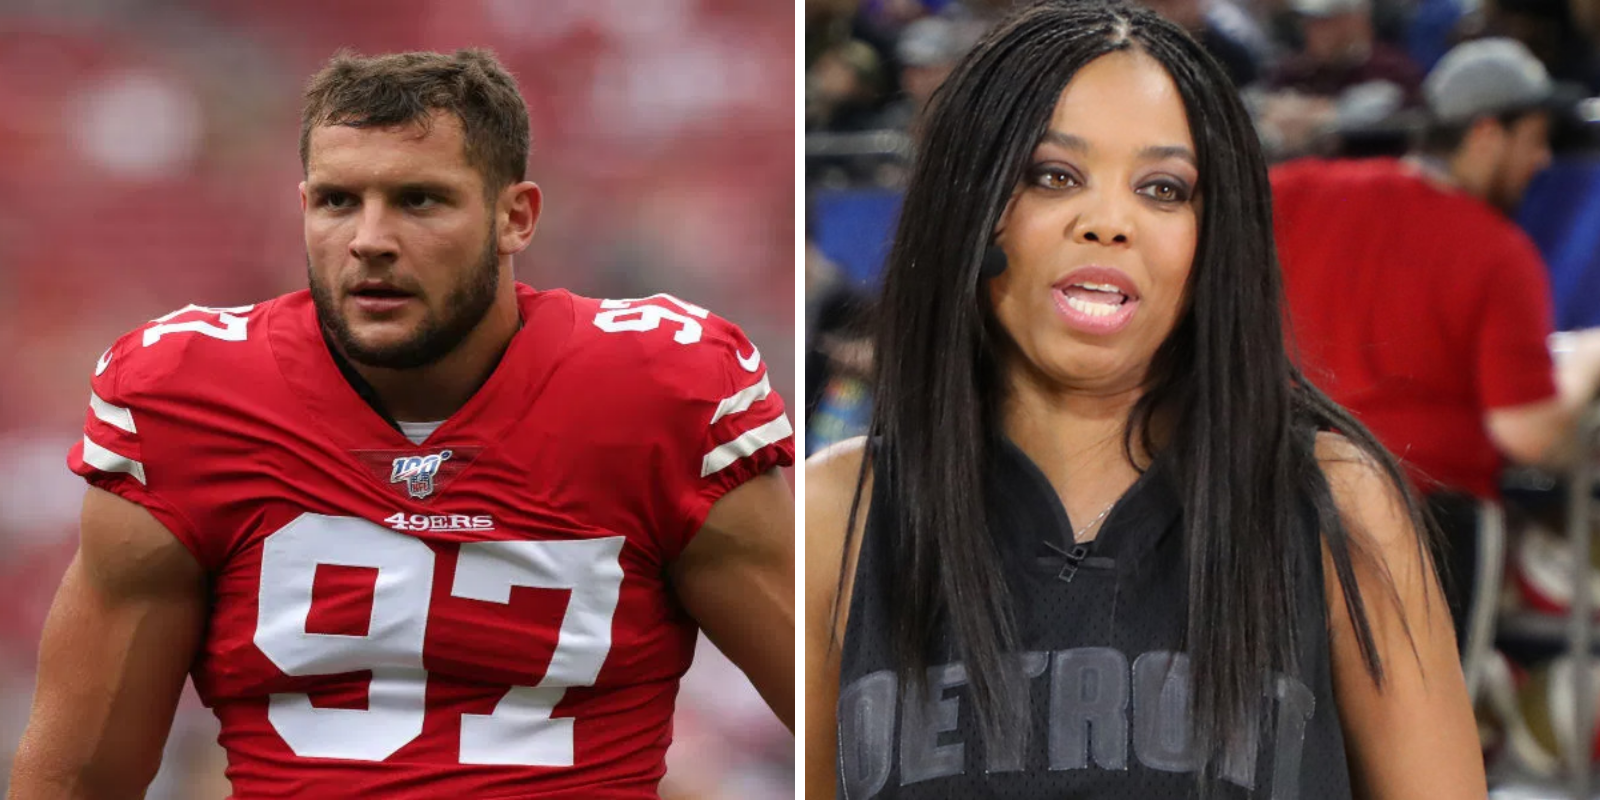 Jemele Hill tried to cancel NFL player Nick Bosa just before the Super Bowl